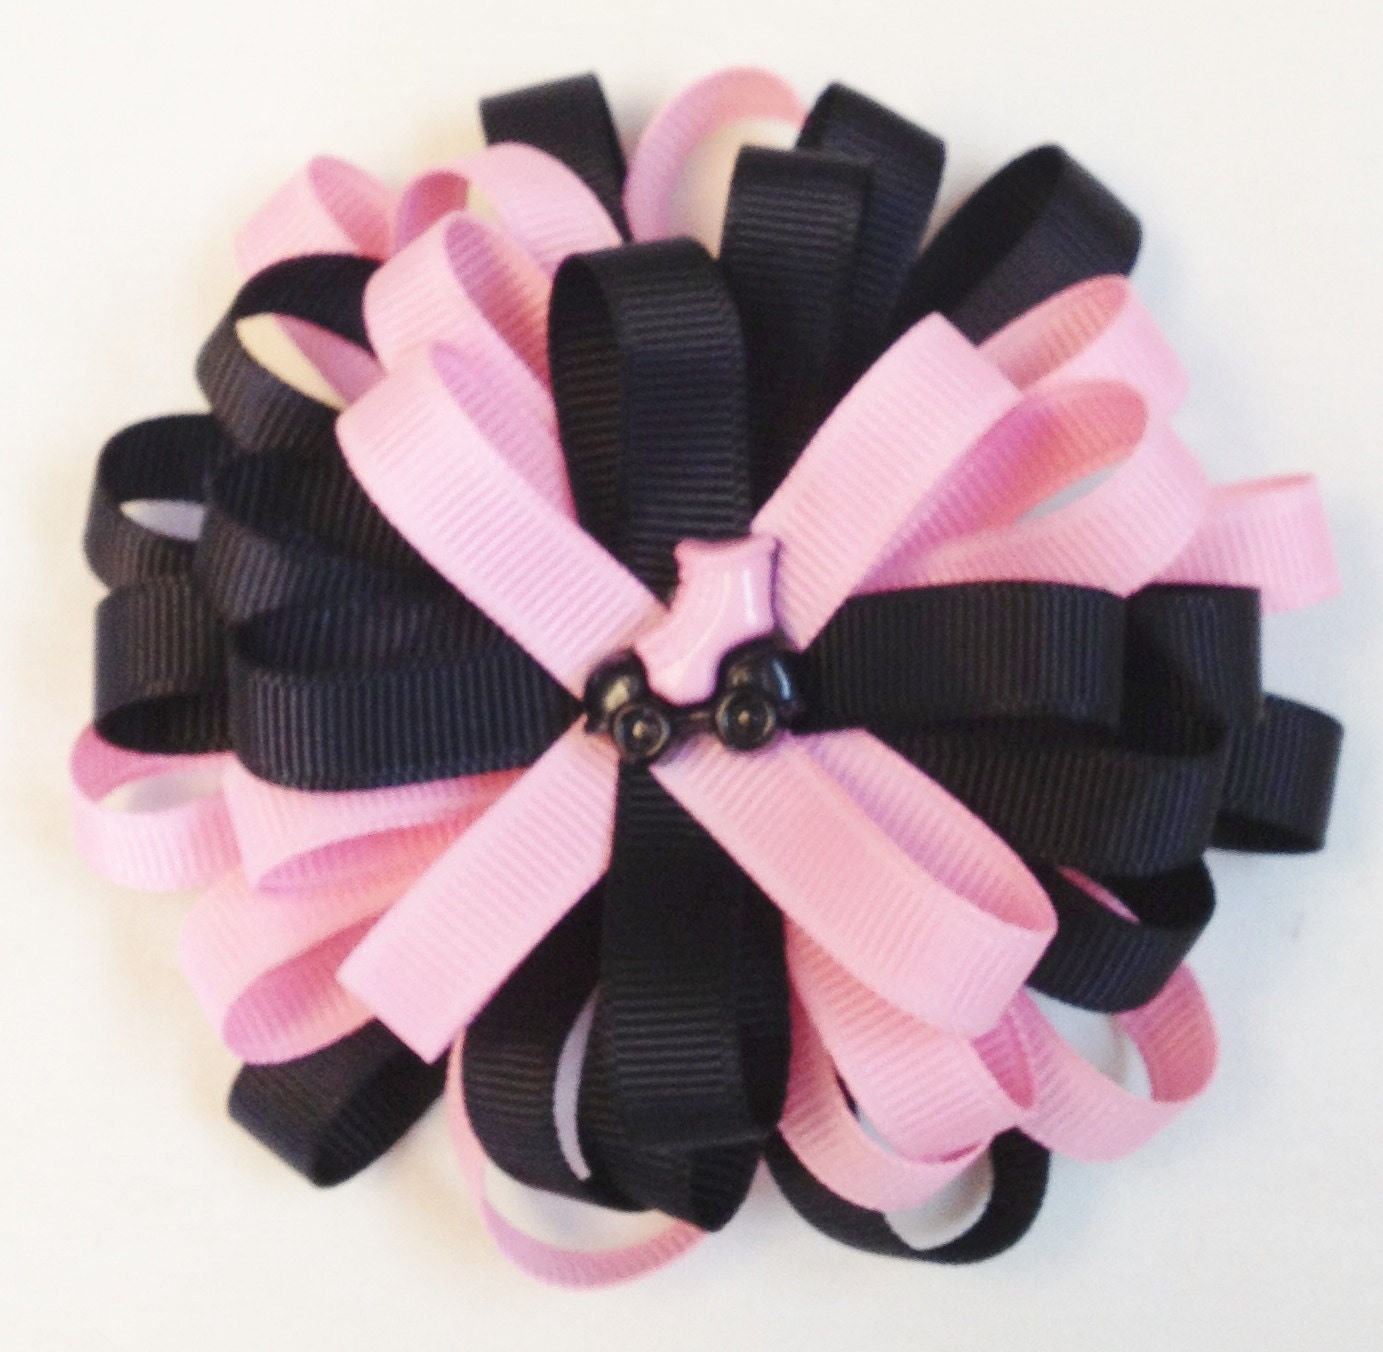 Black Flower Bow With Diamond: Pink And Black Bow Flower Loop Bow Layered Hair Bow Hair